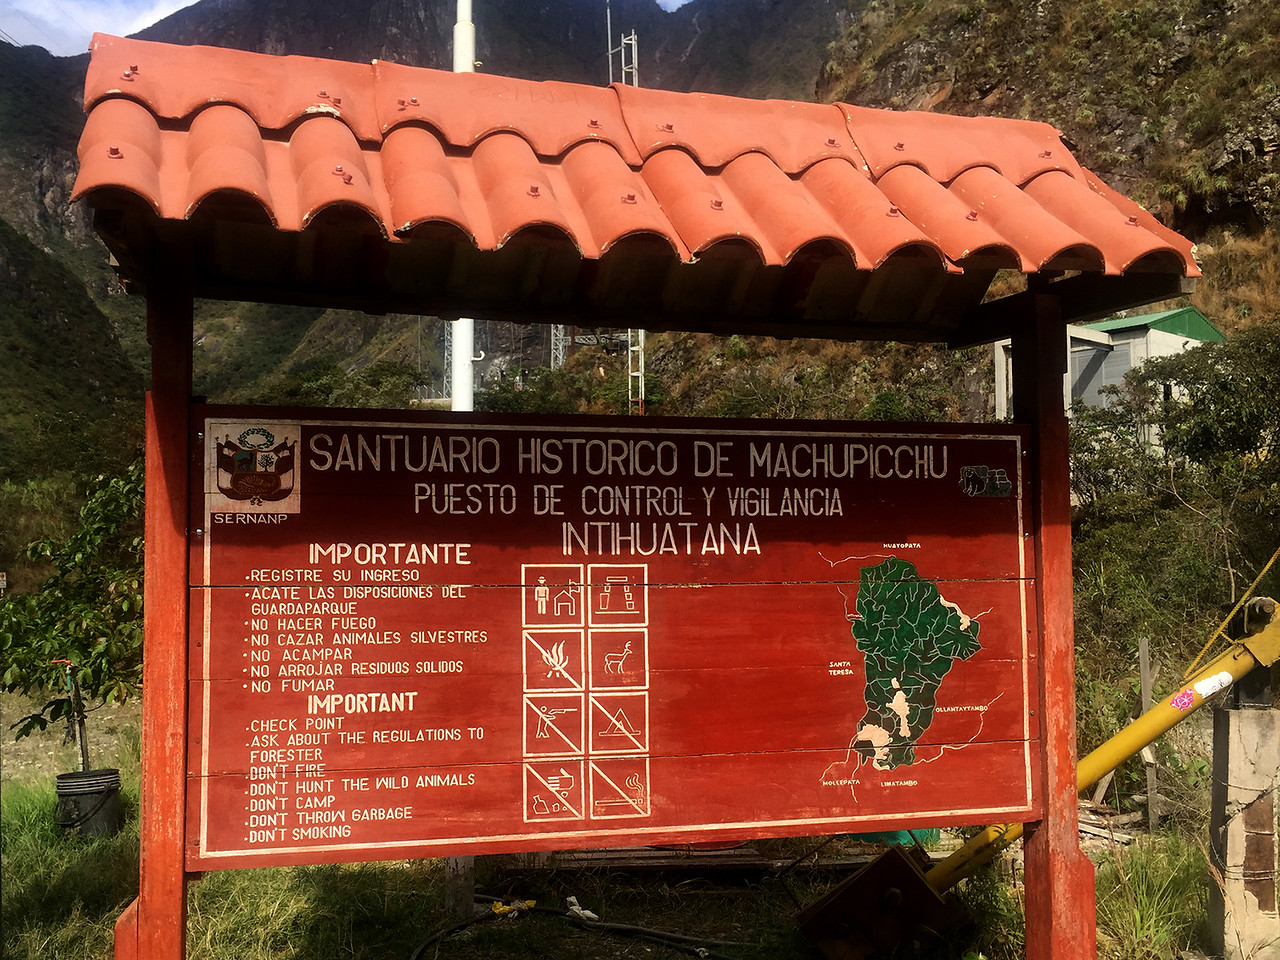 End of motorable road to Machu Picchu, Peru